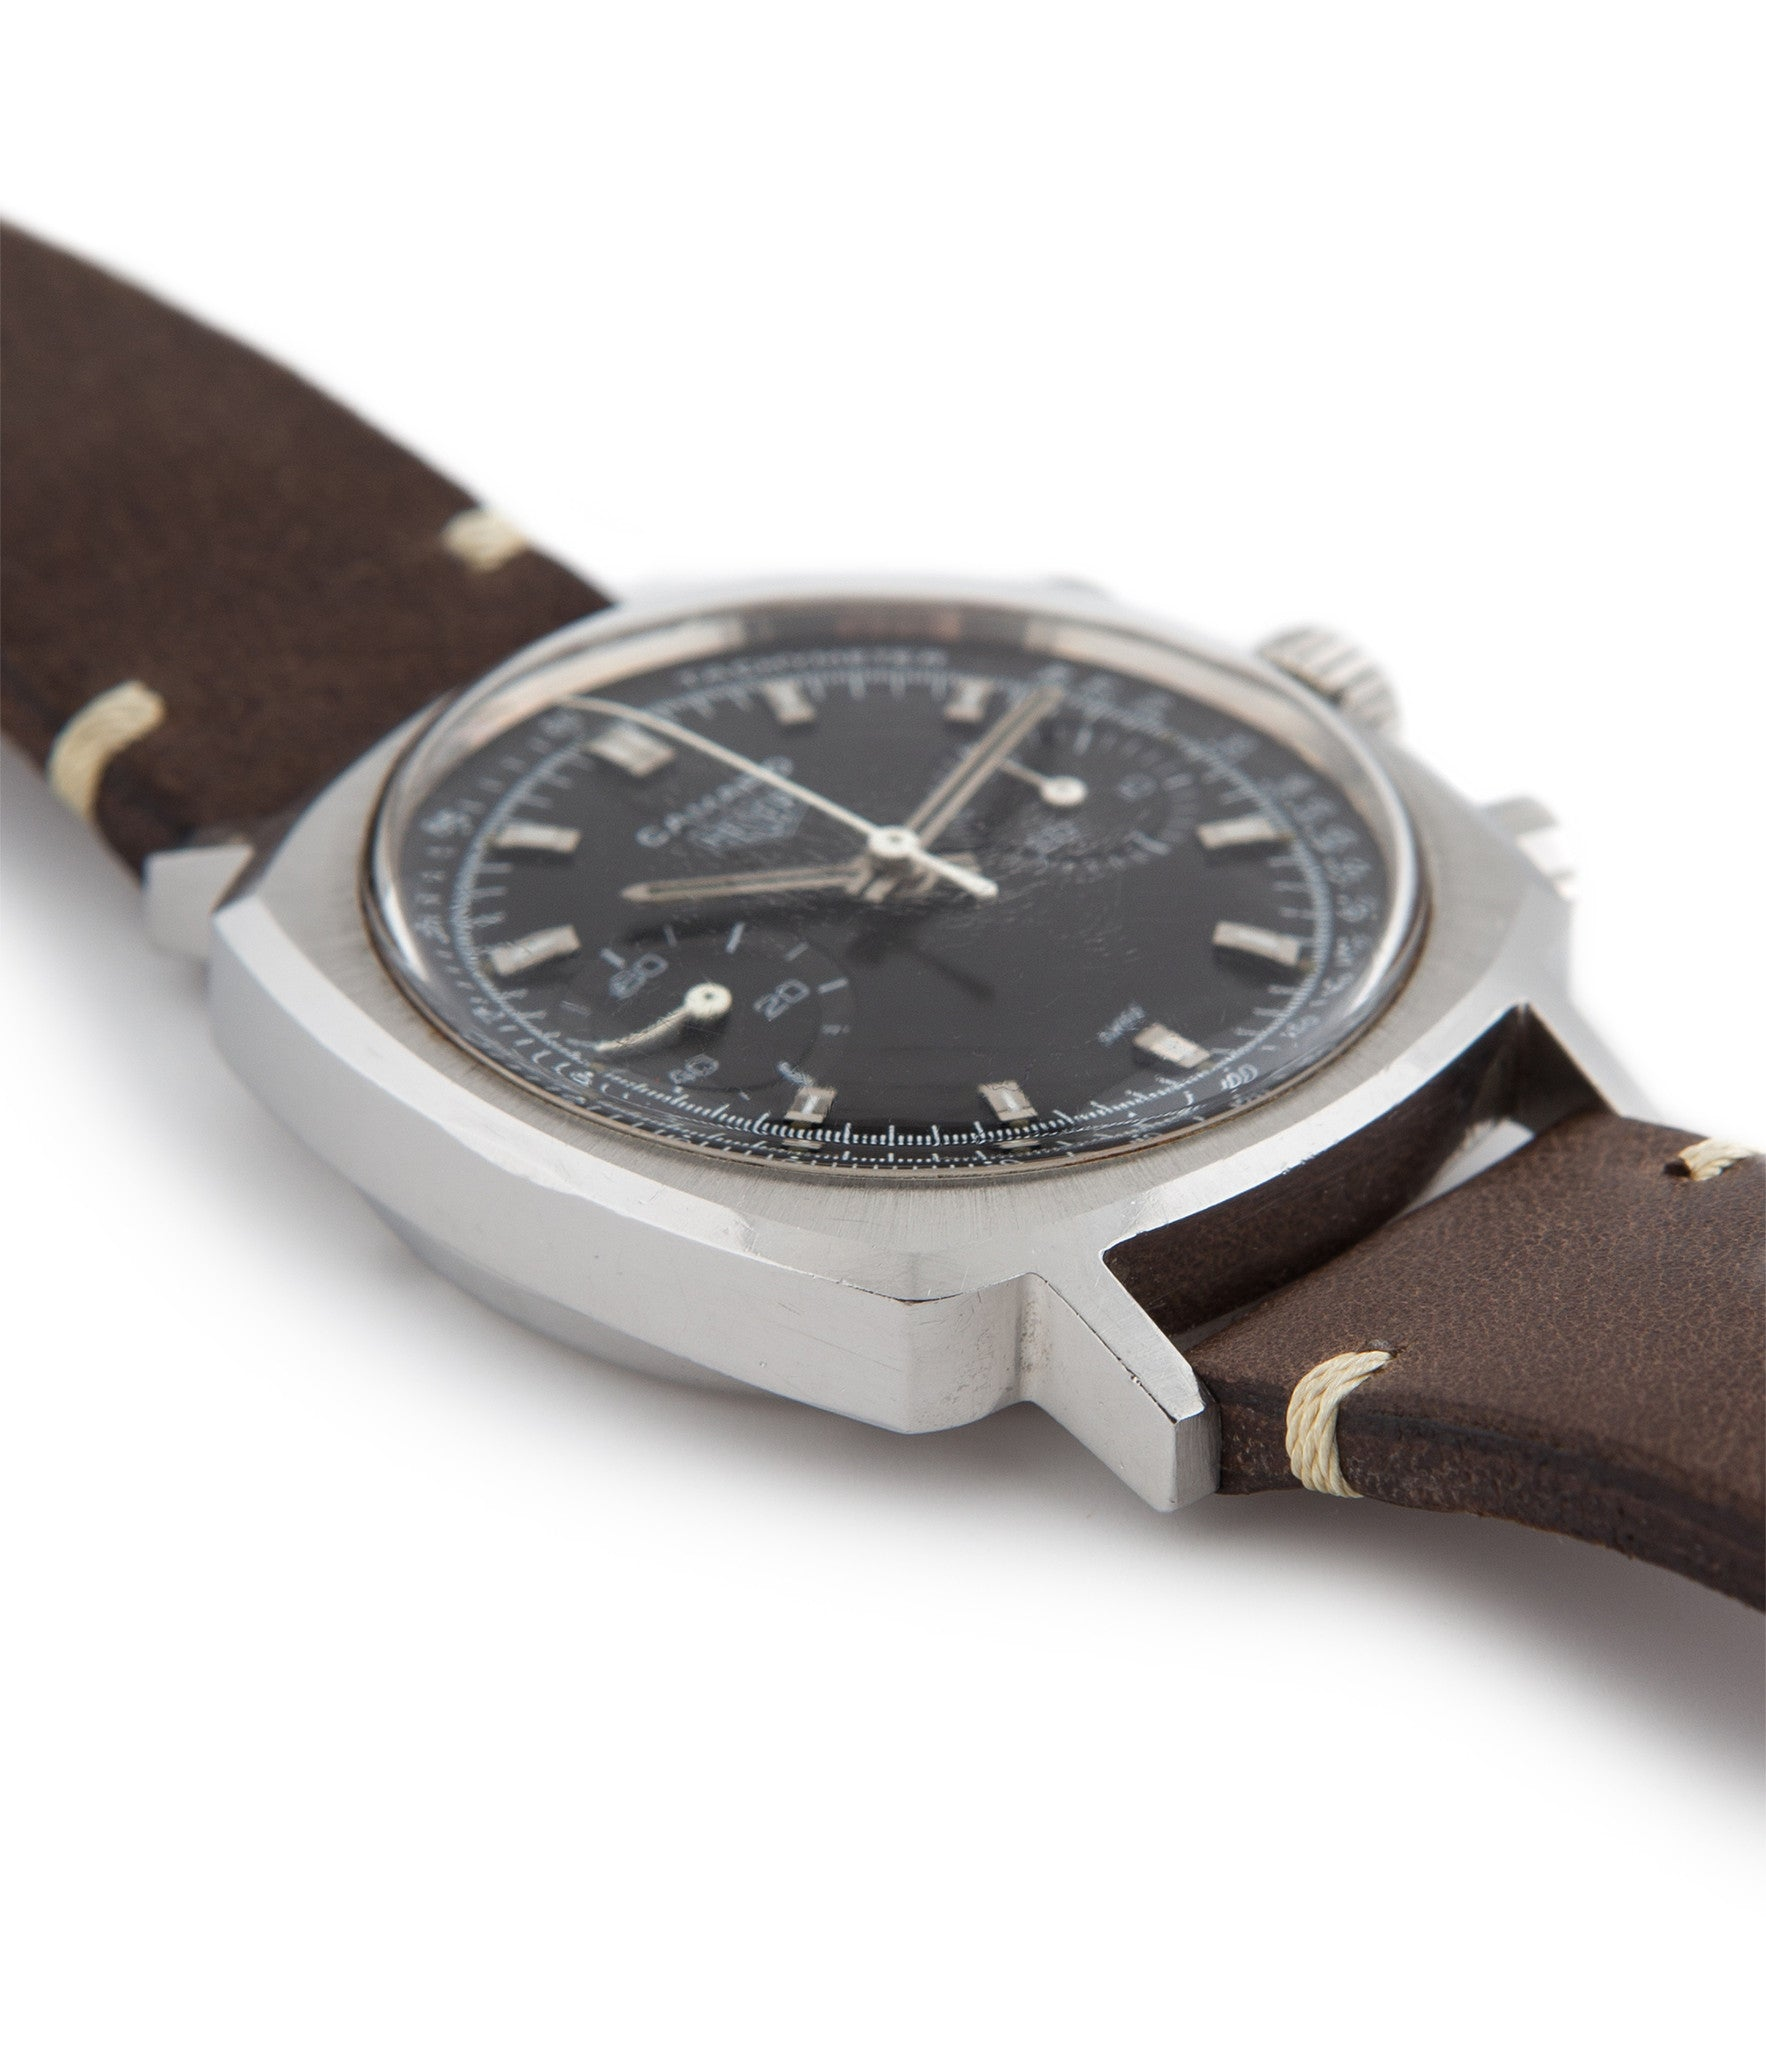 Heuer Camaro 7743 stainless steel manual-winding Cal. Valjoux 7733 vintage authentic pre-owned dress, sport luxury watch from 1969 with black dial and brown  strap with chronograph, hours, minutes, sub-seconds